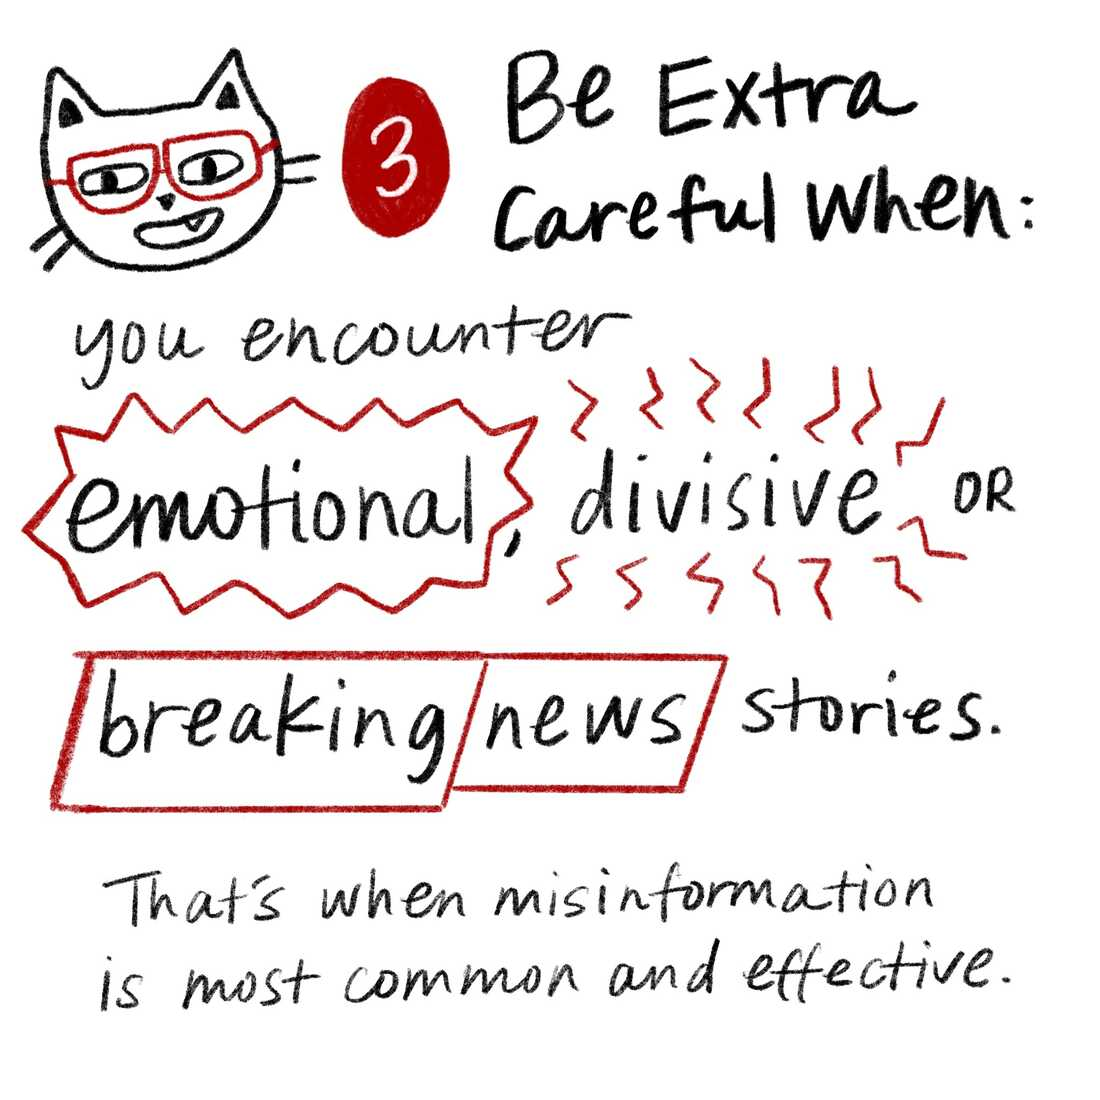 Tip 3: Be extra careful when you encounter emotional, divisive or breaking news stories. That's when misinformation is most common and effective.